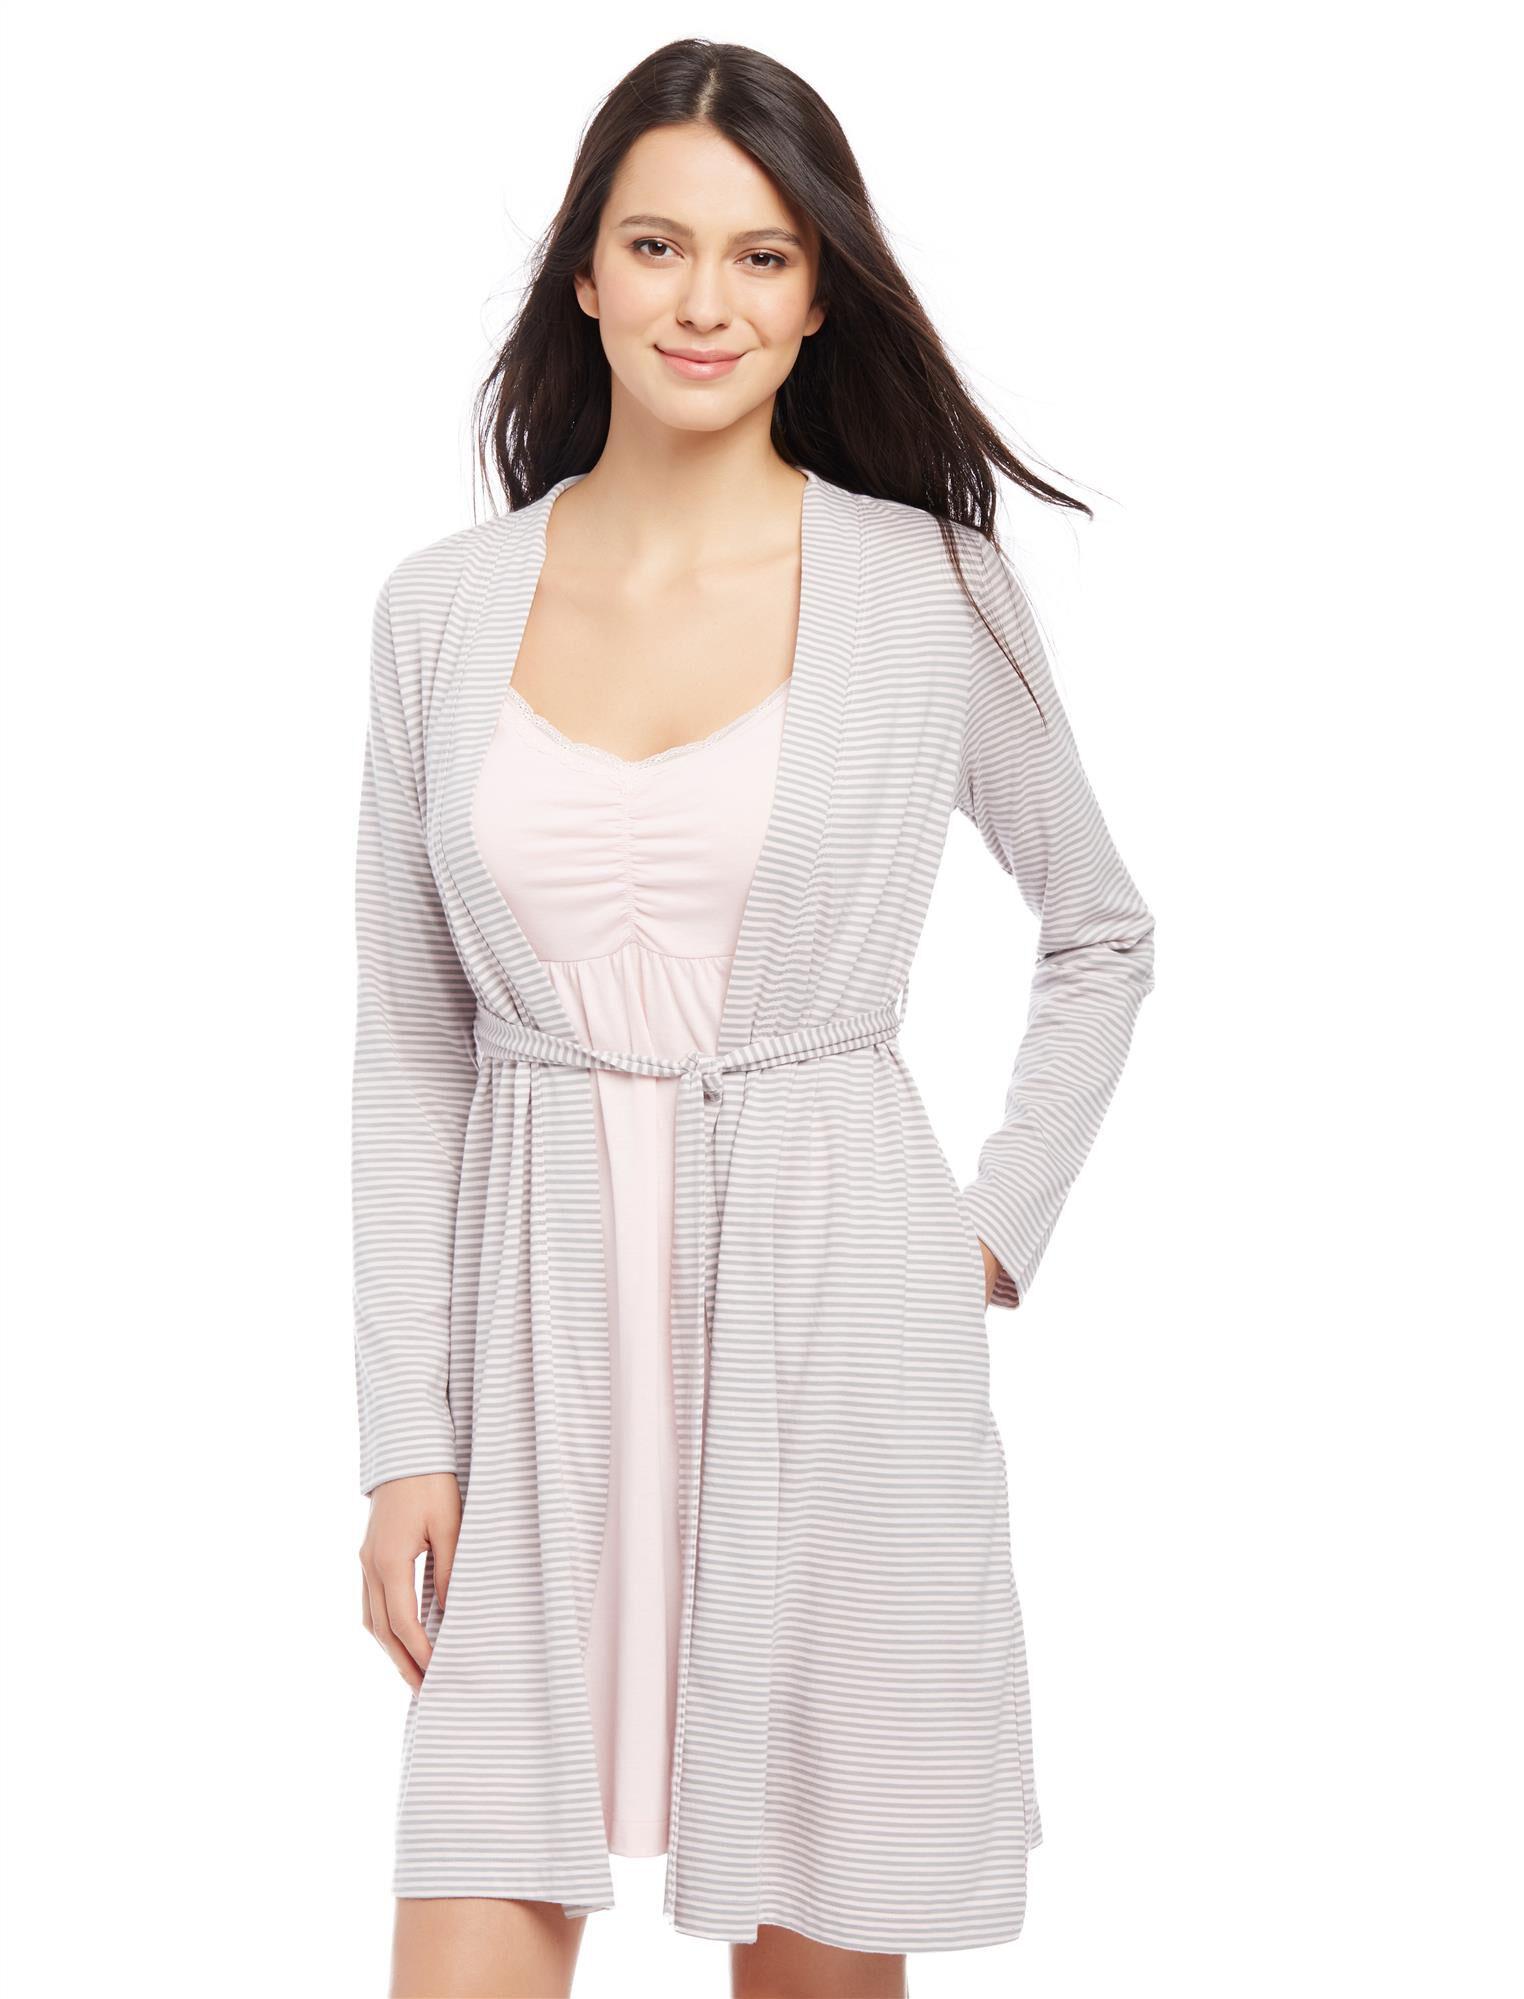 Bump In The Night Nursing Nightgown And Robe- Pink Stripe